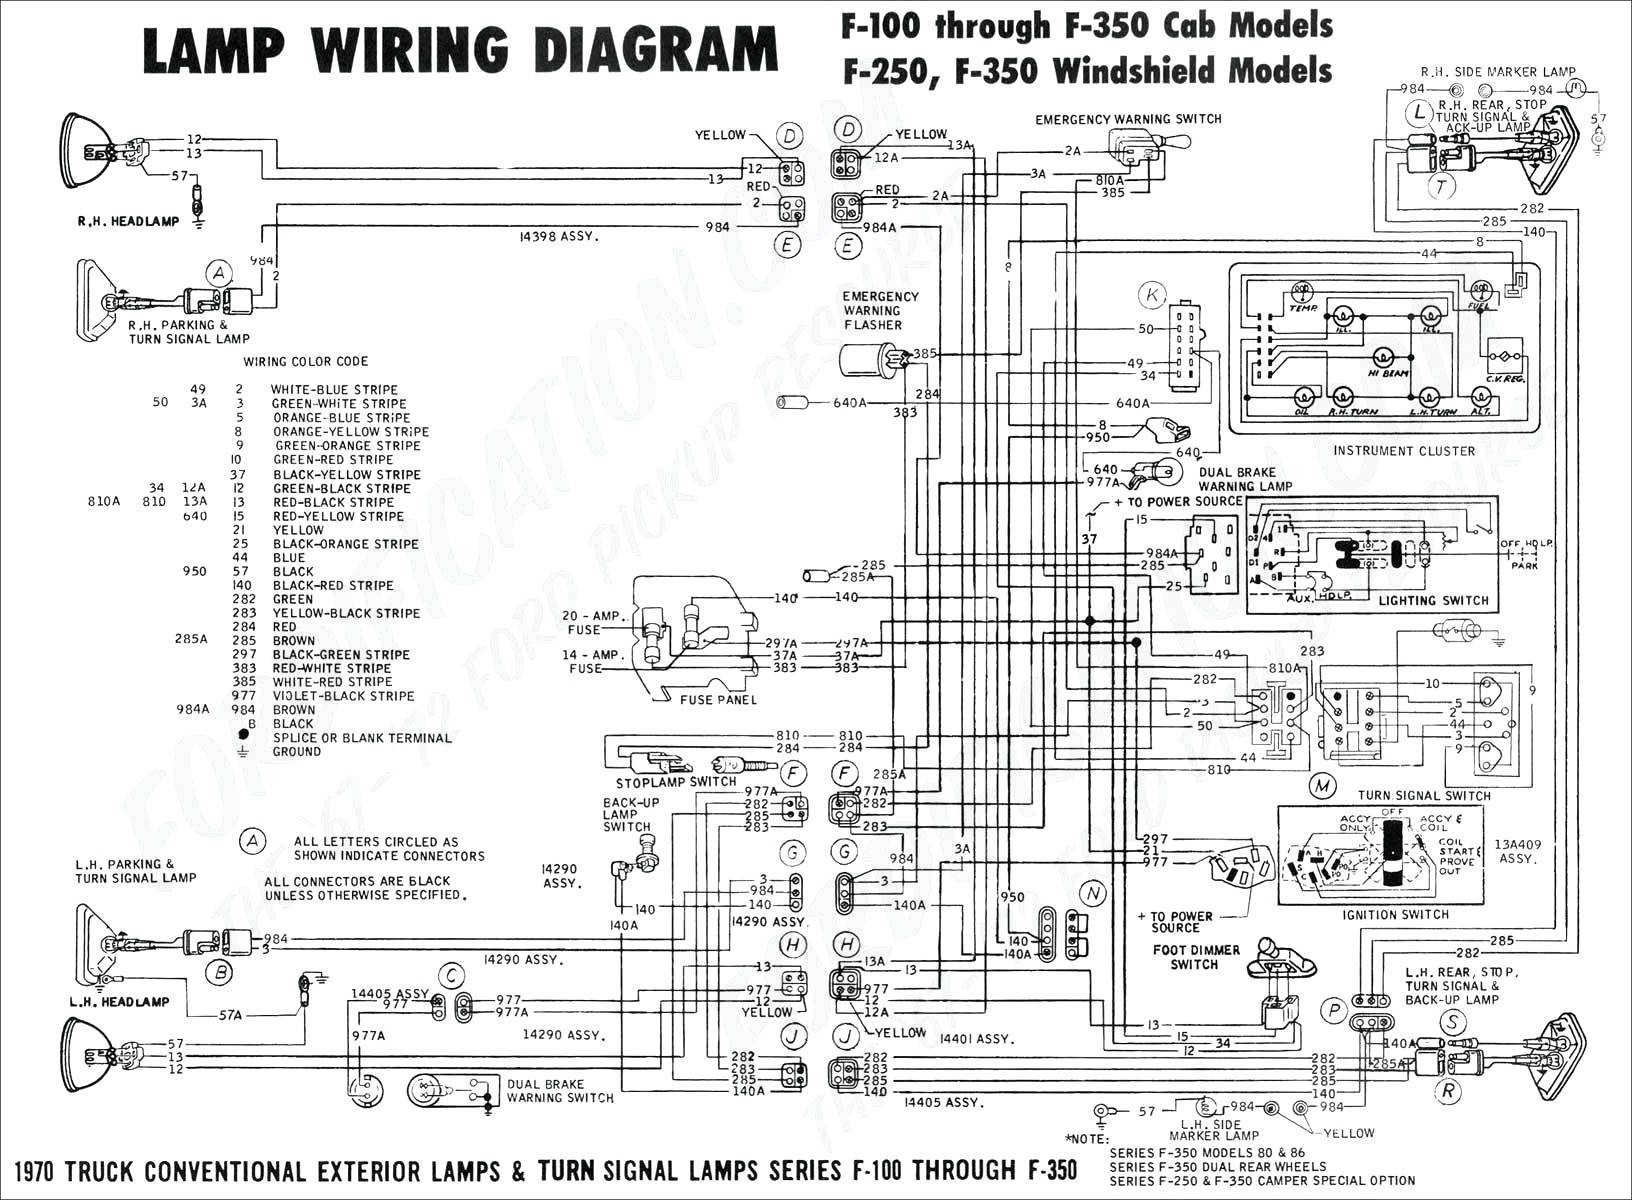 DIAGRAM 2004 International 4300 Wiring Diagram FULL ...